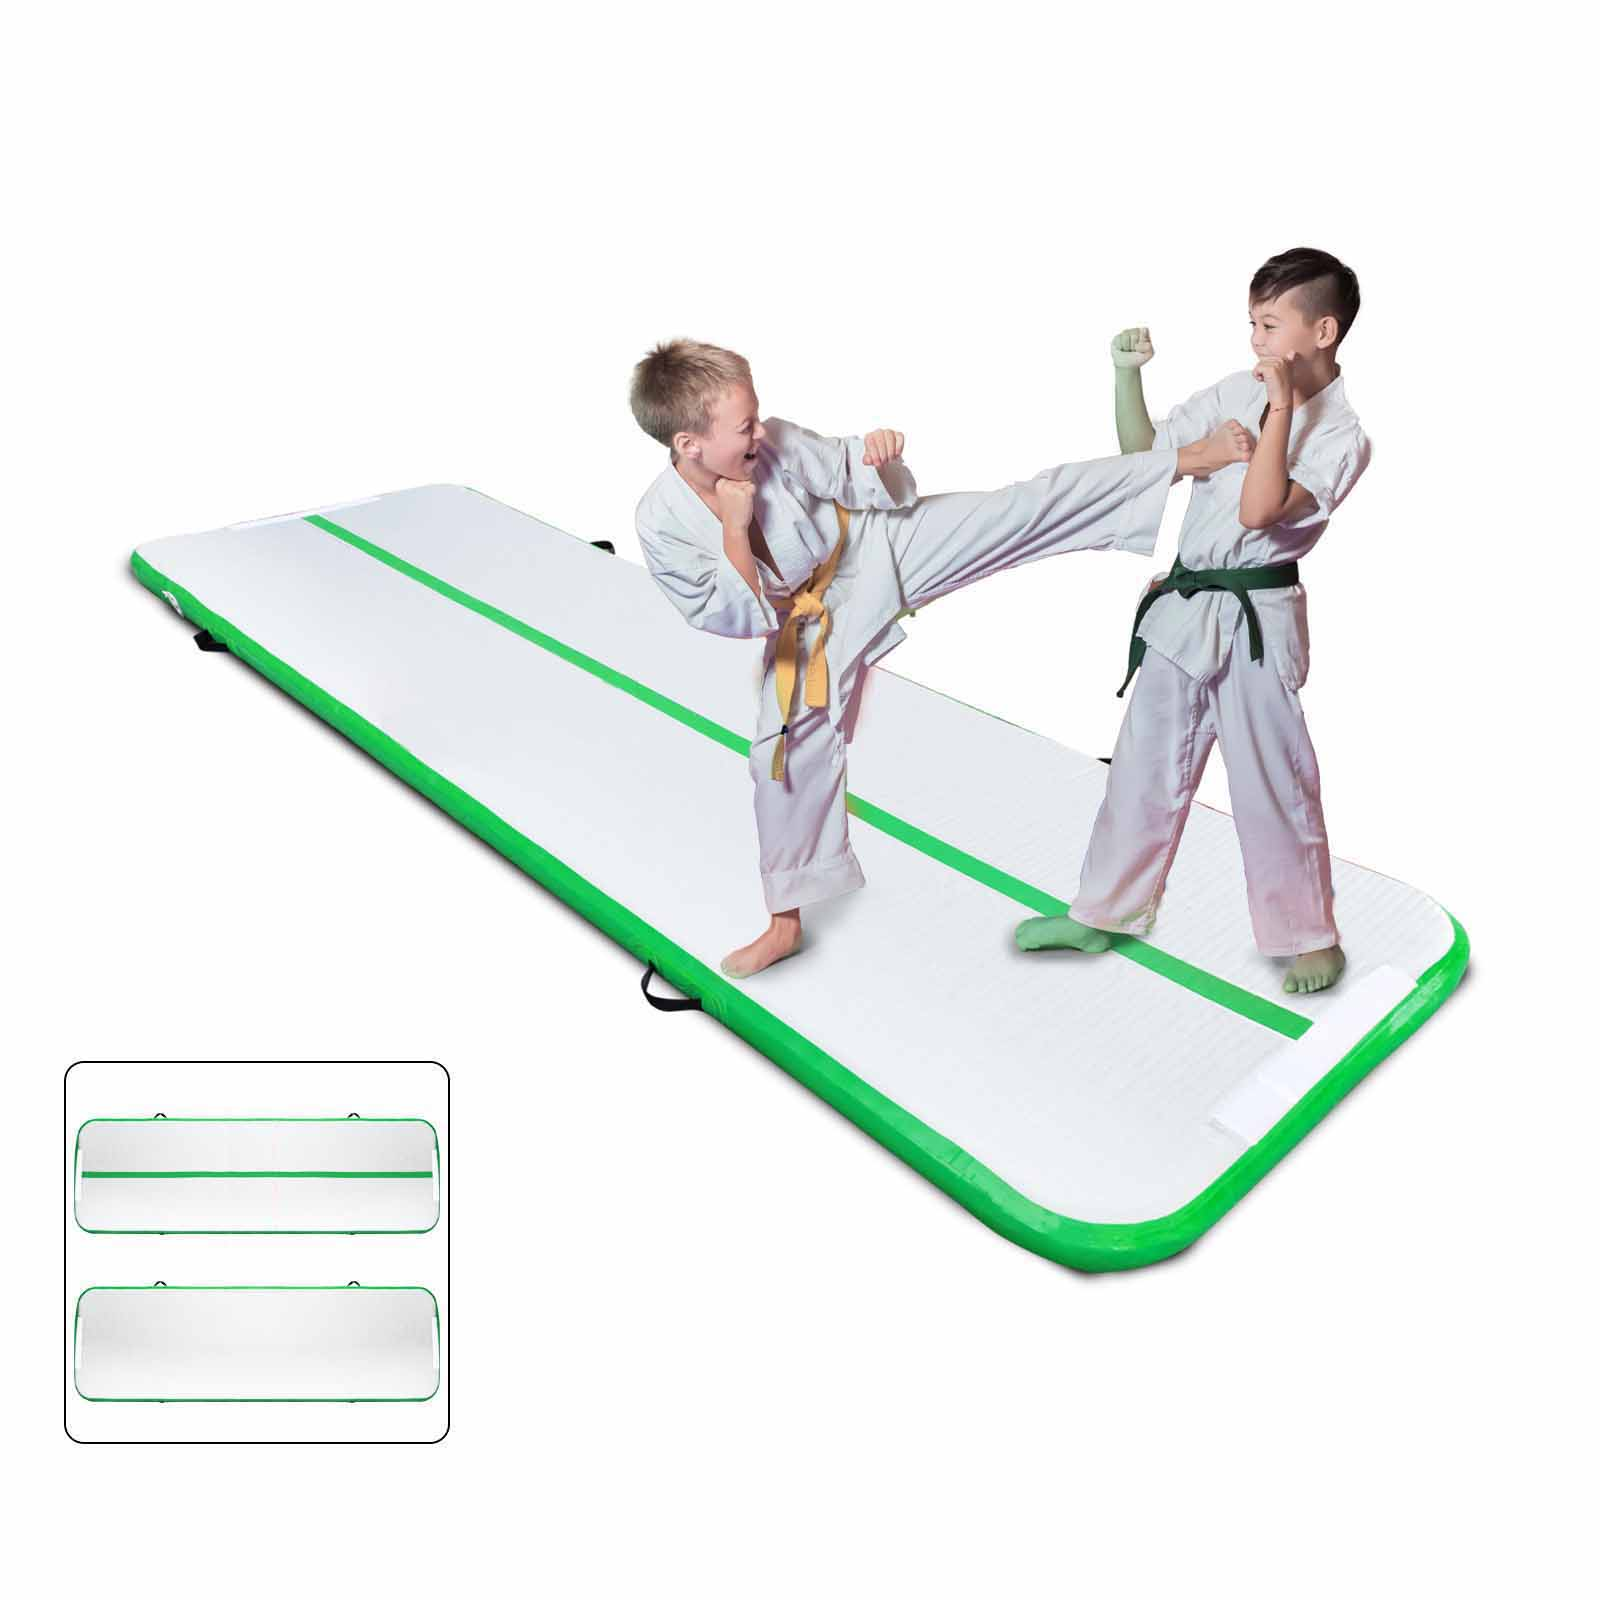 3m Air Track Floor Tumbling Inflatable Gym Mat Gymnastic